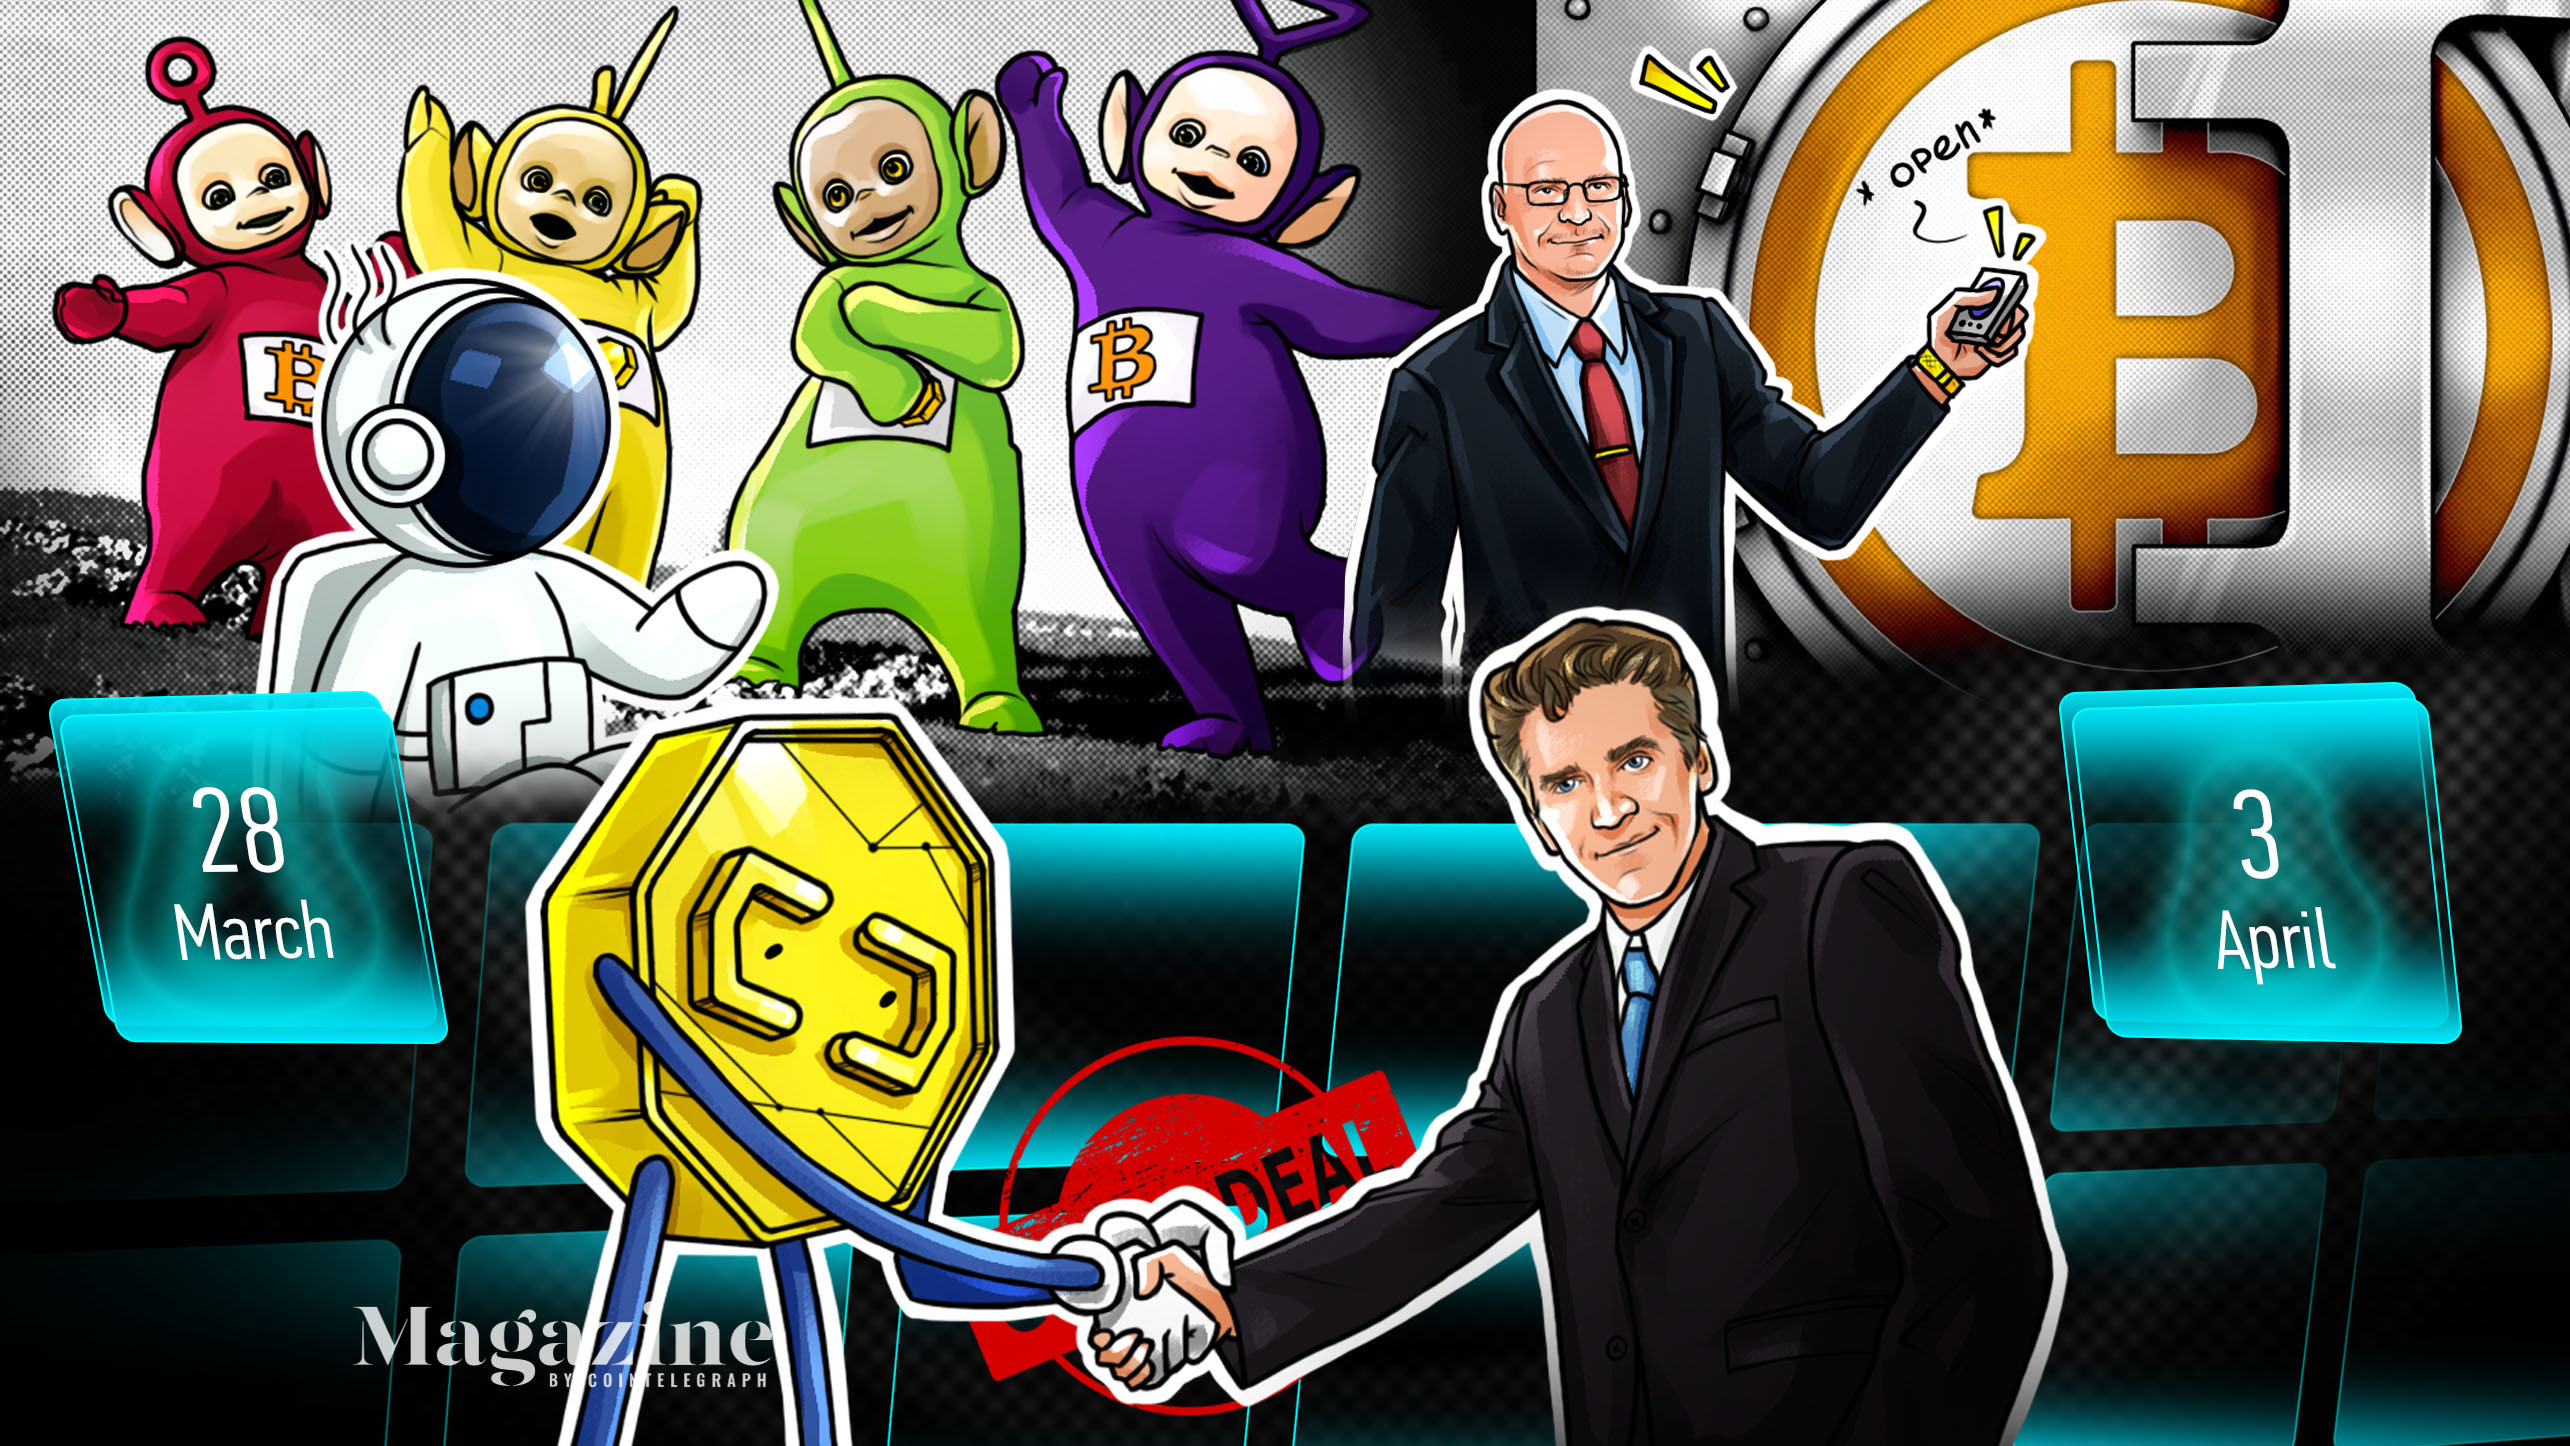 ETH smashes records, Bitcoin's brilliant quarter, PayPal's big move: Hodler's Digest, March 28–April 3